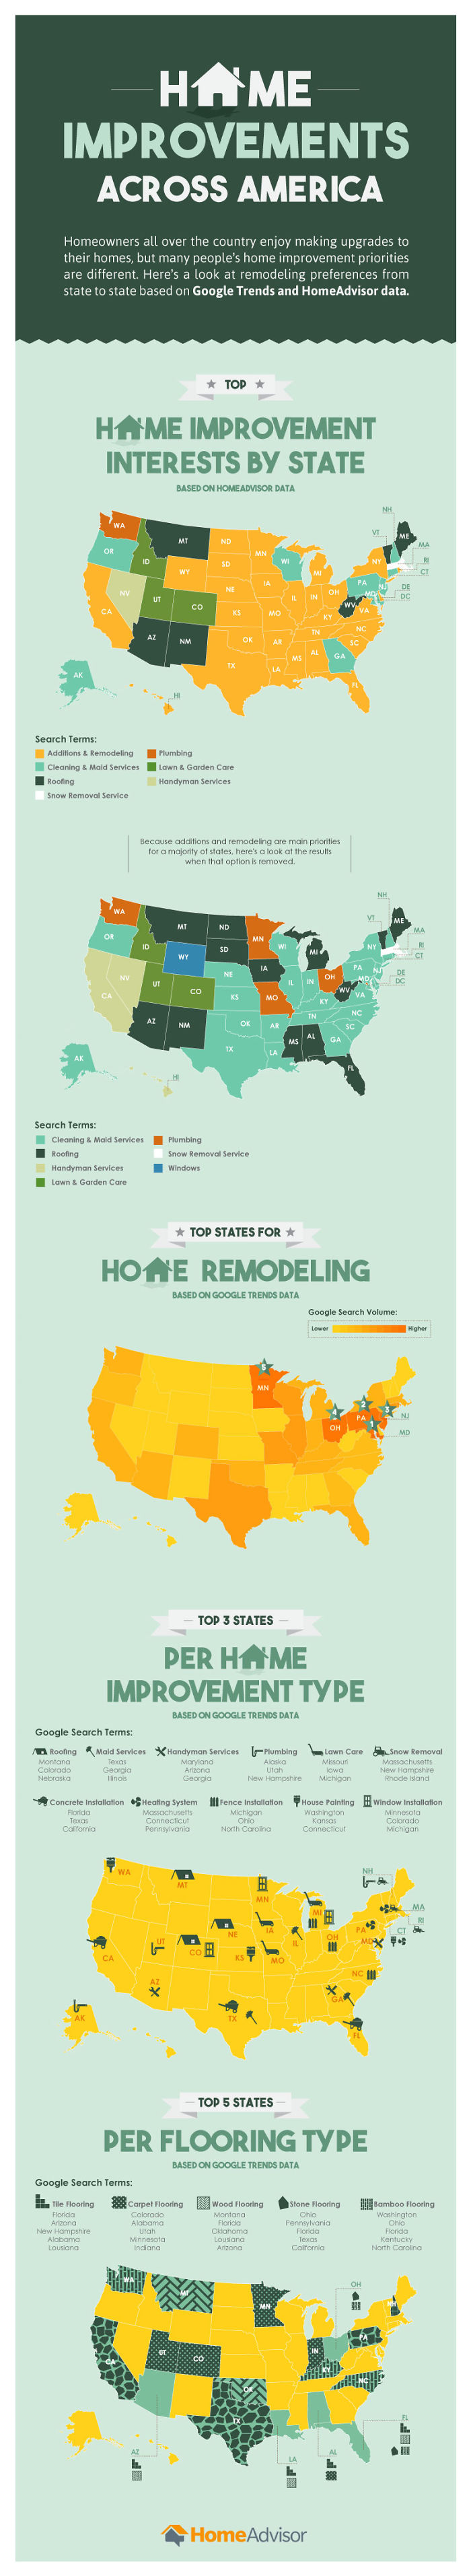 Are You Keeping Up With These Average Home Improvement Trends Across America?